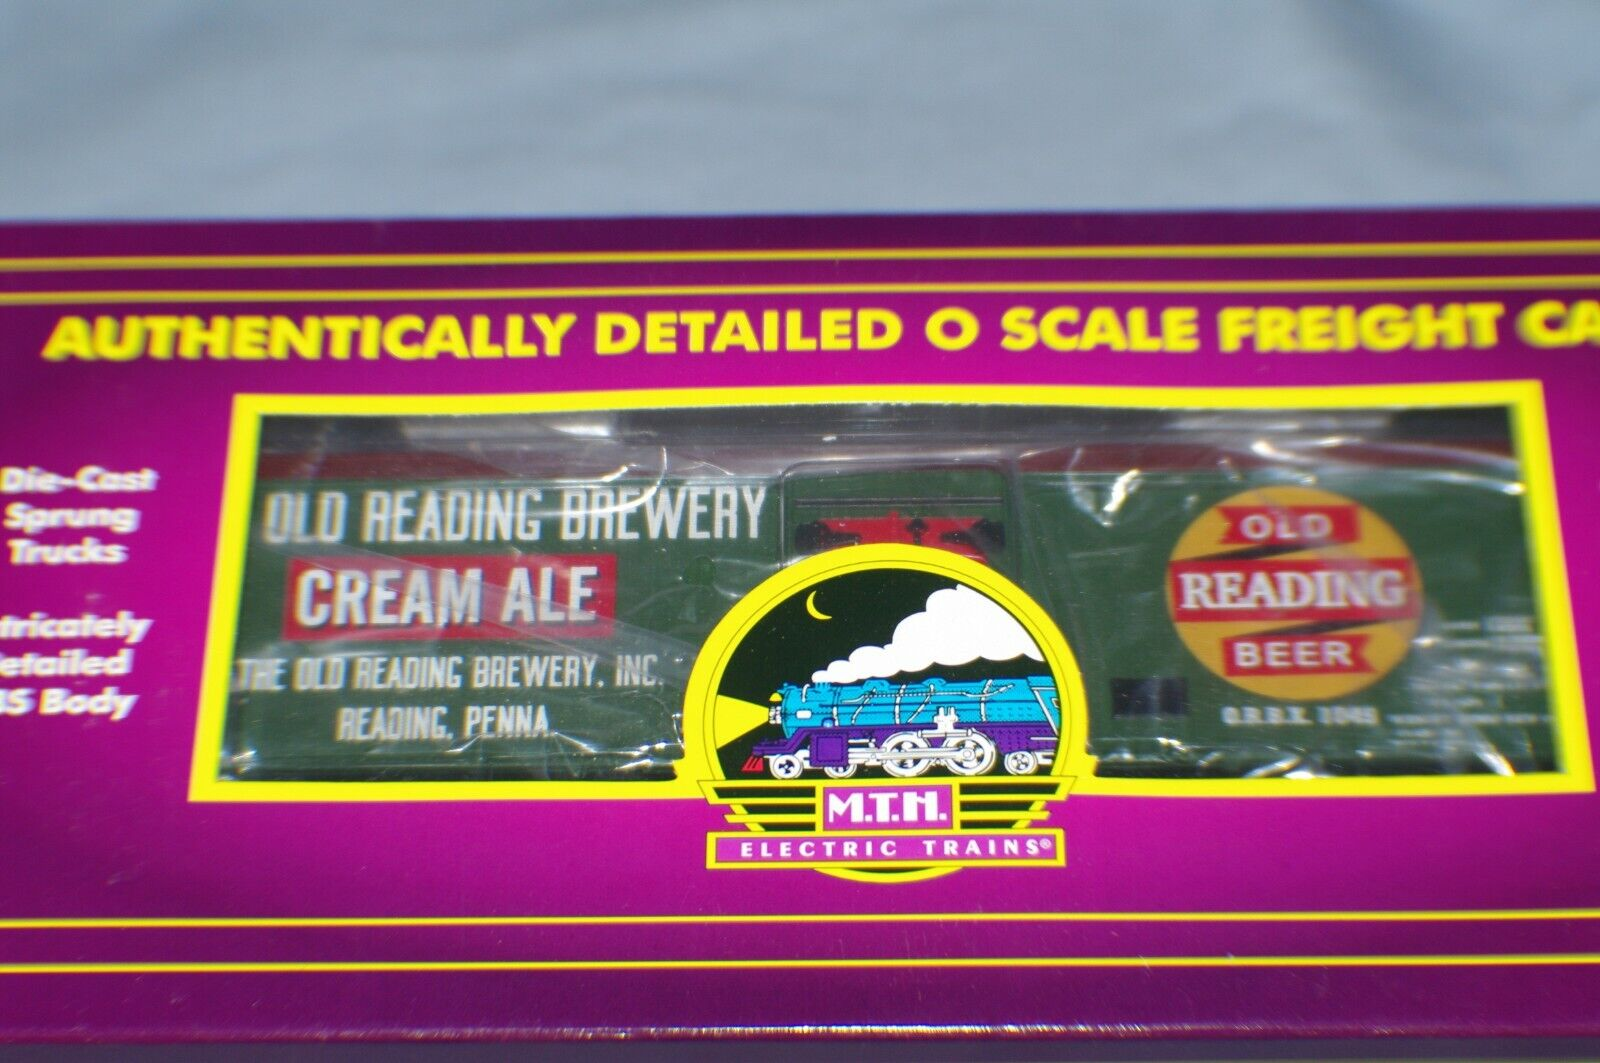 O SCALE MTH OLD READING CREAM ALE BEER CAR NEU READING BREWERY